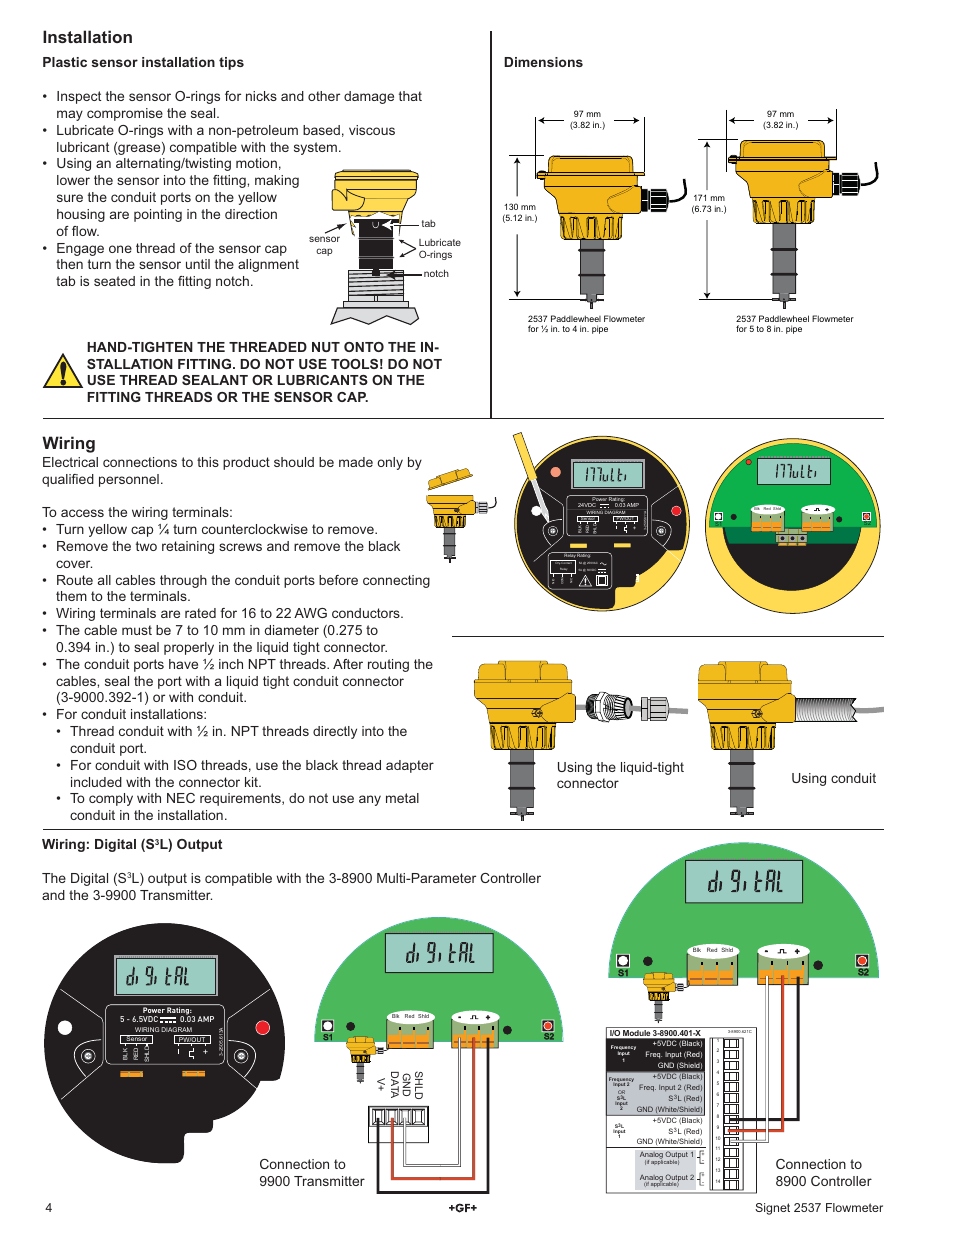 Installation, Wiring, Dimensions | GF Signet 2537 Paddlewheel Flow Sensor  User Manual | Page 4 / 16